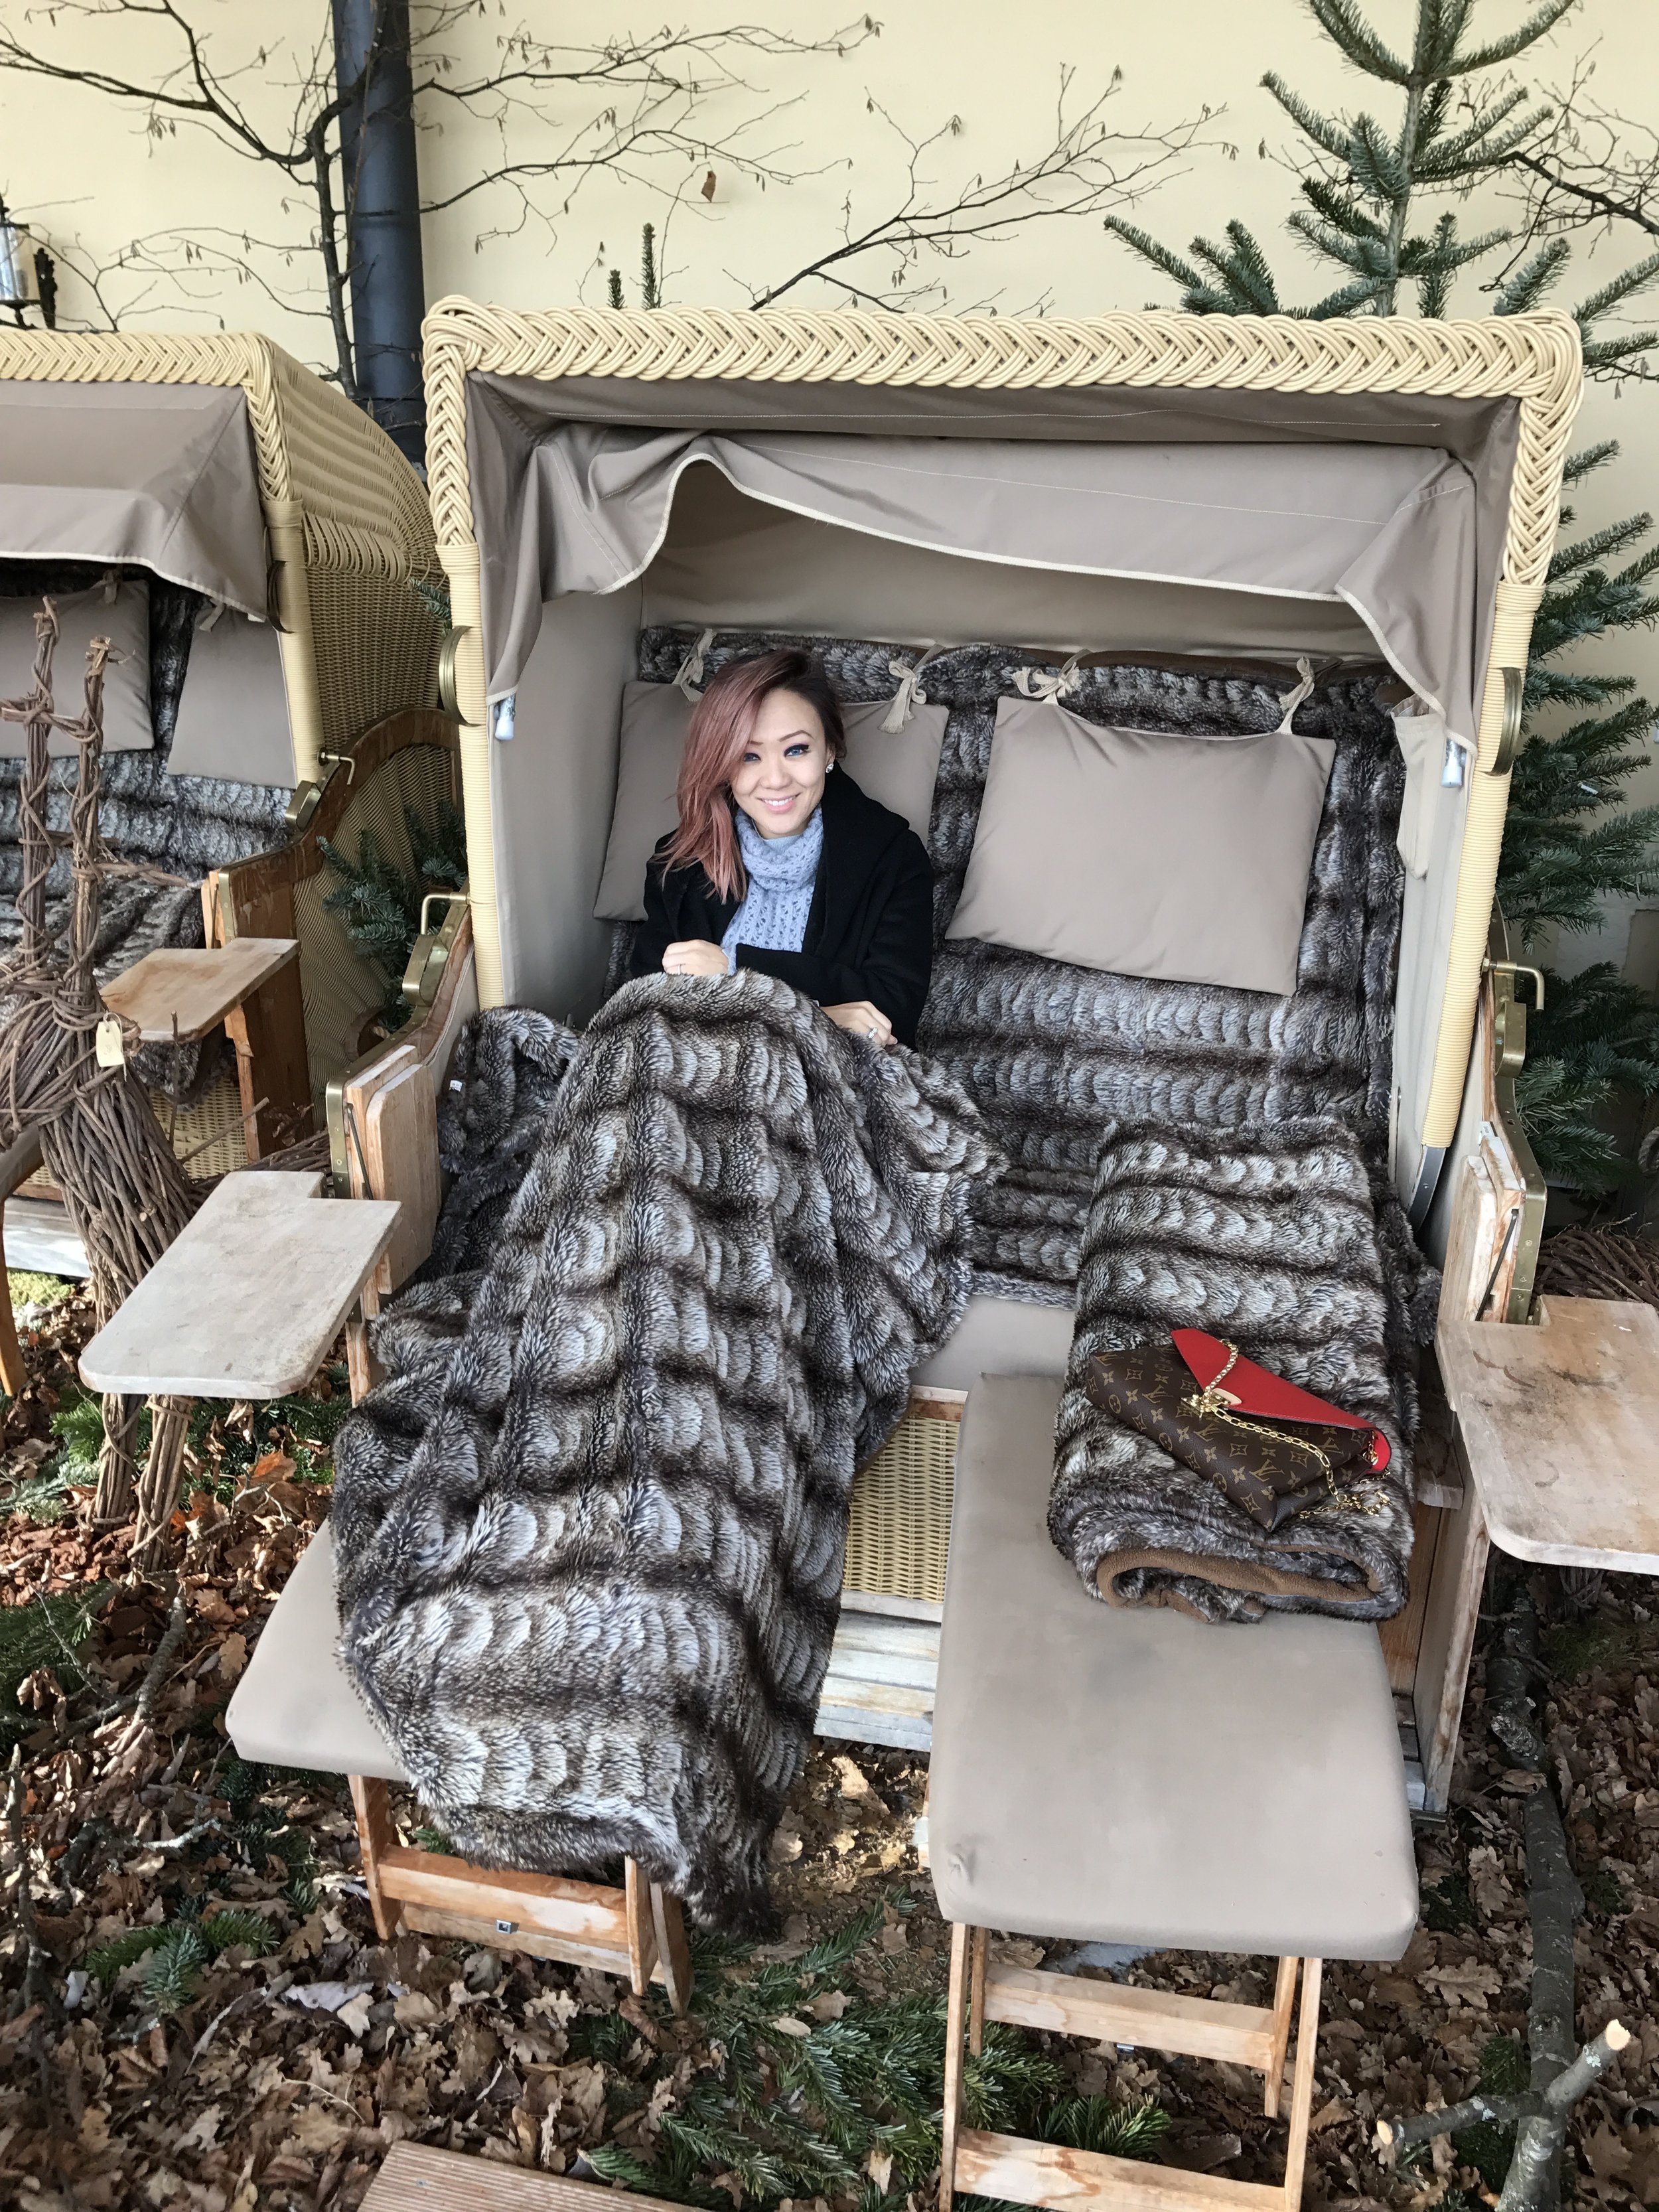 Chilling in their cabana ready to spend a lazy afternoon reading and drinking mulled wine